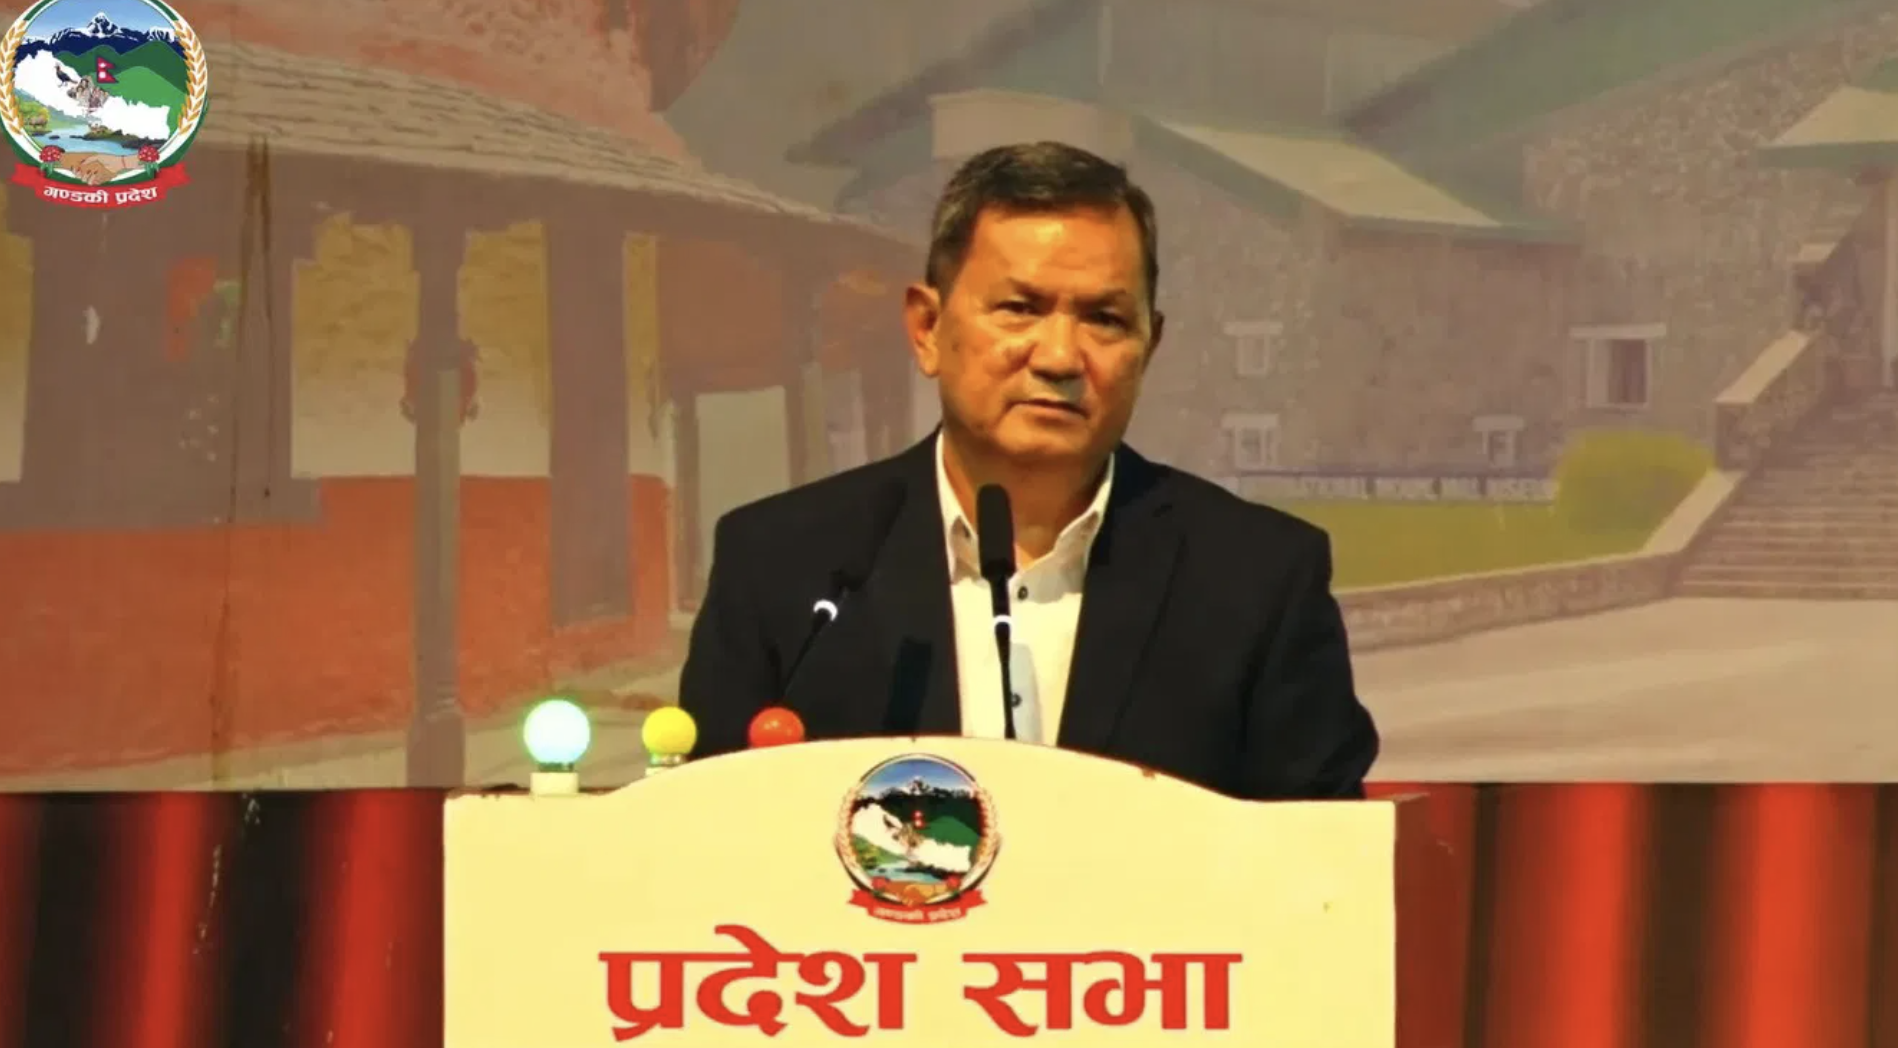 Gandaki Chief Minister Gurung resigns after no vote of confidence